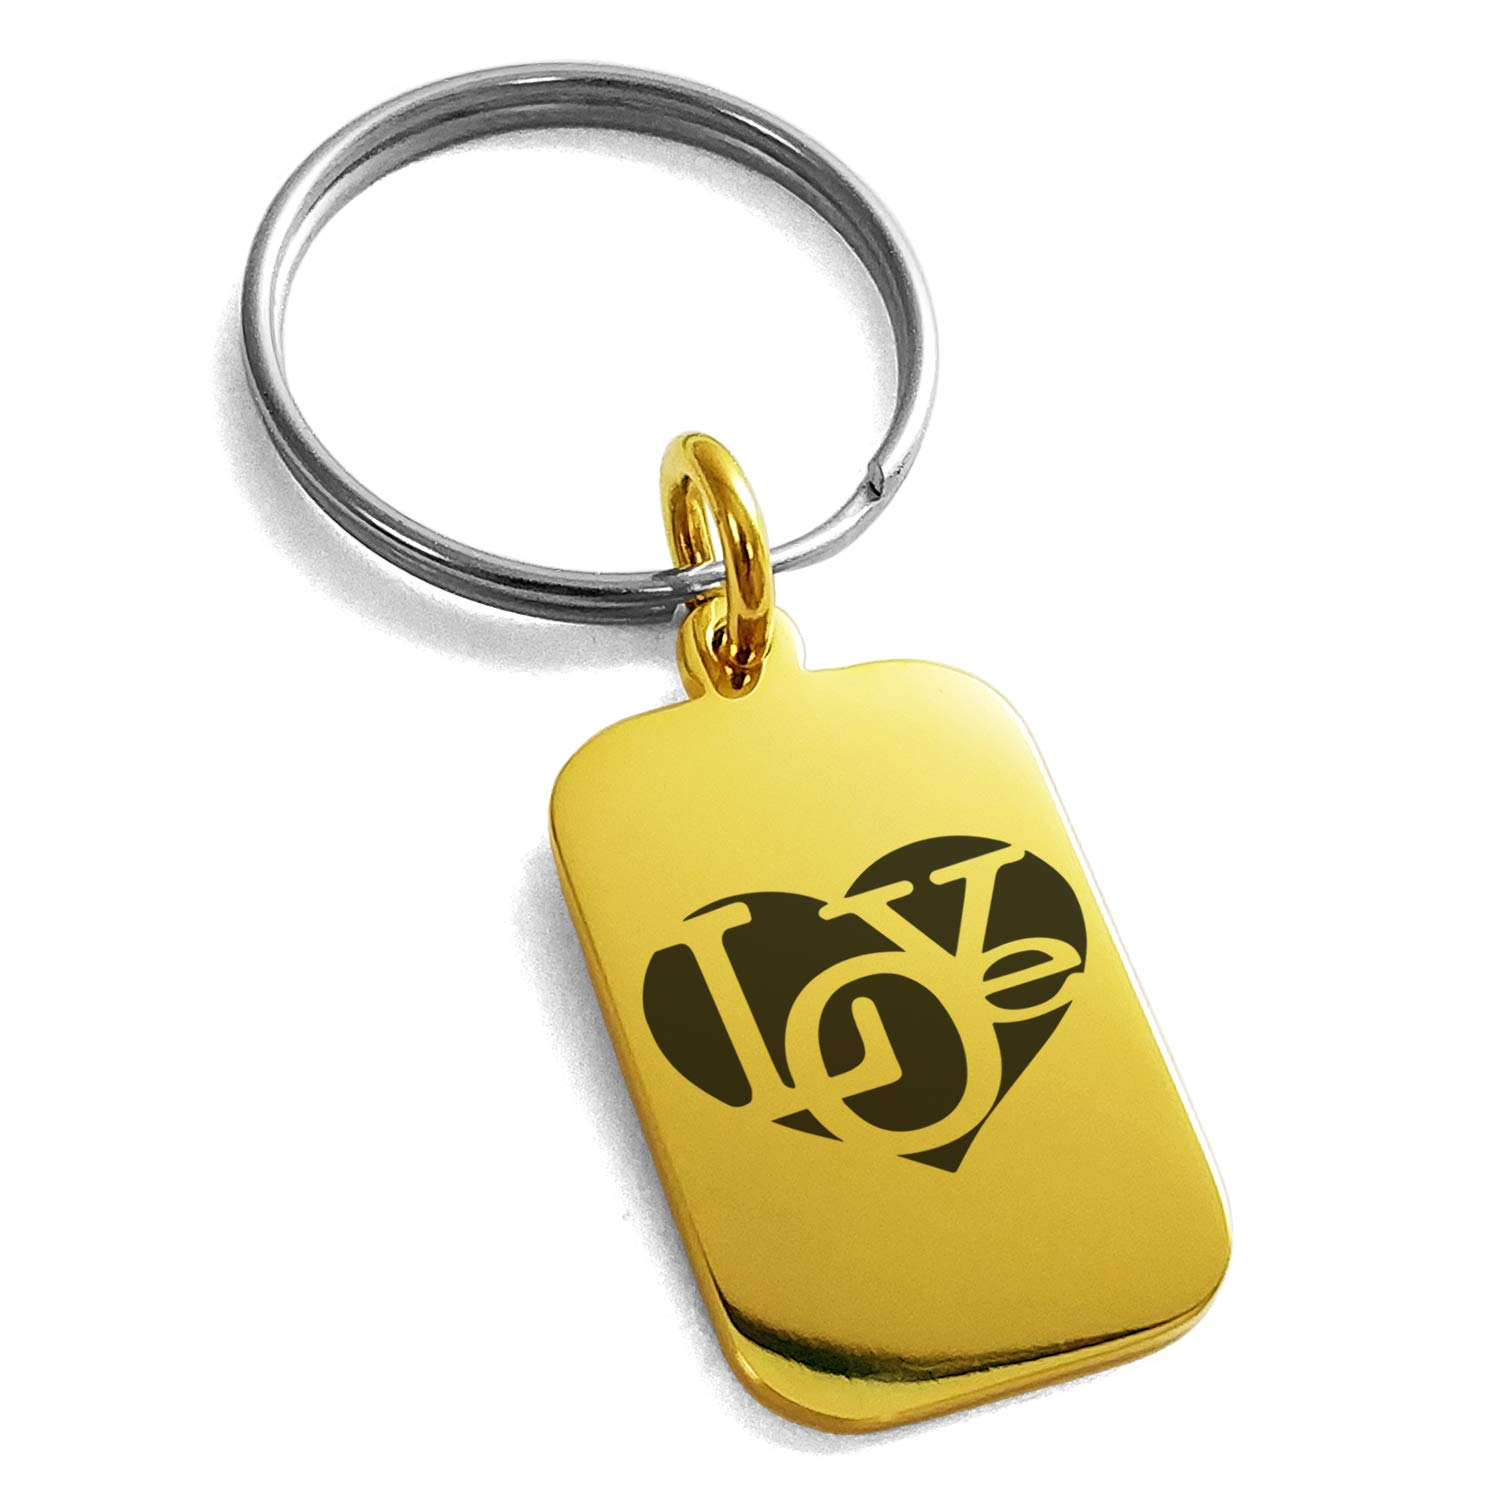 Tioneer Gold Plated Stainless Steel Iconic Love Heart Engraved Small Rectangle Dog Tag Charm Keychain Keyring